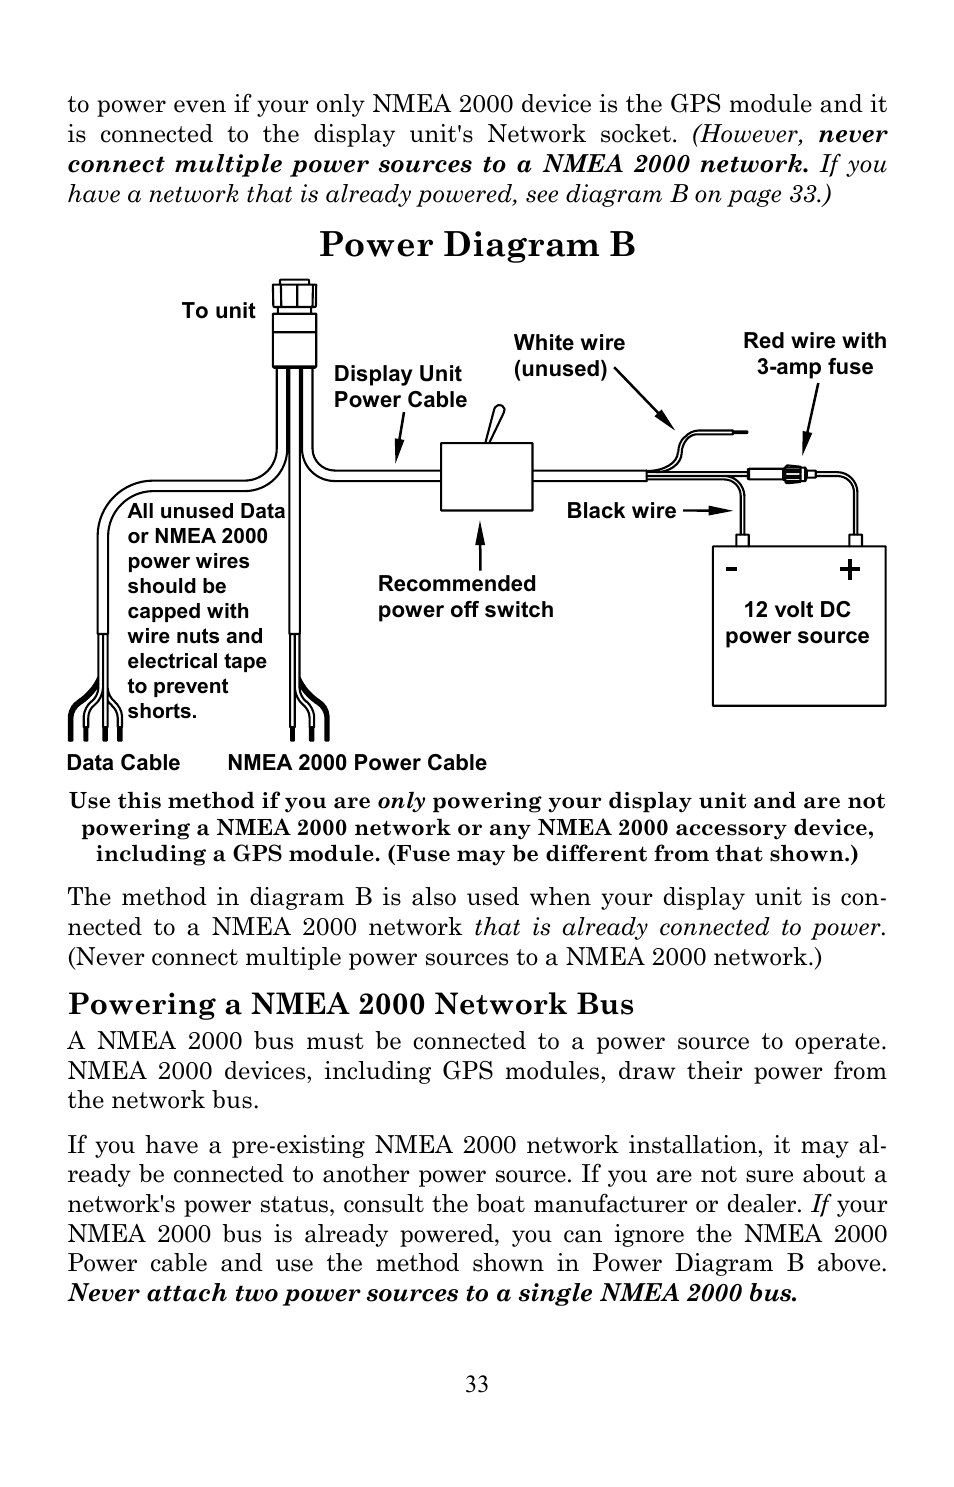 power diagram b, powering a nmea 2000 network bus | lowrance electronic  lms-520c user manual | page 43 / 252